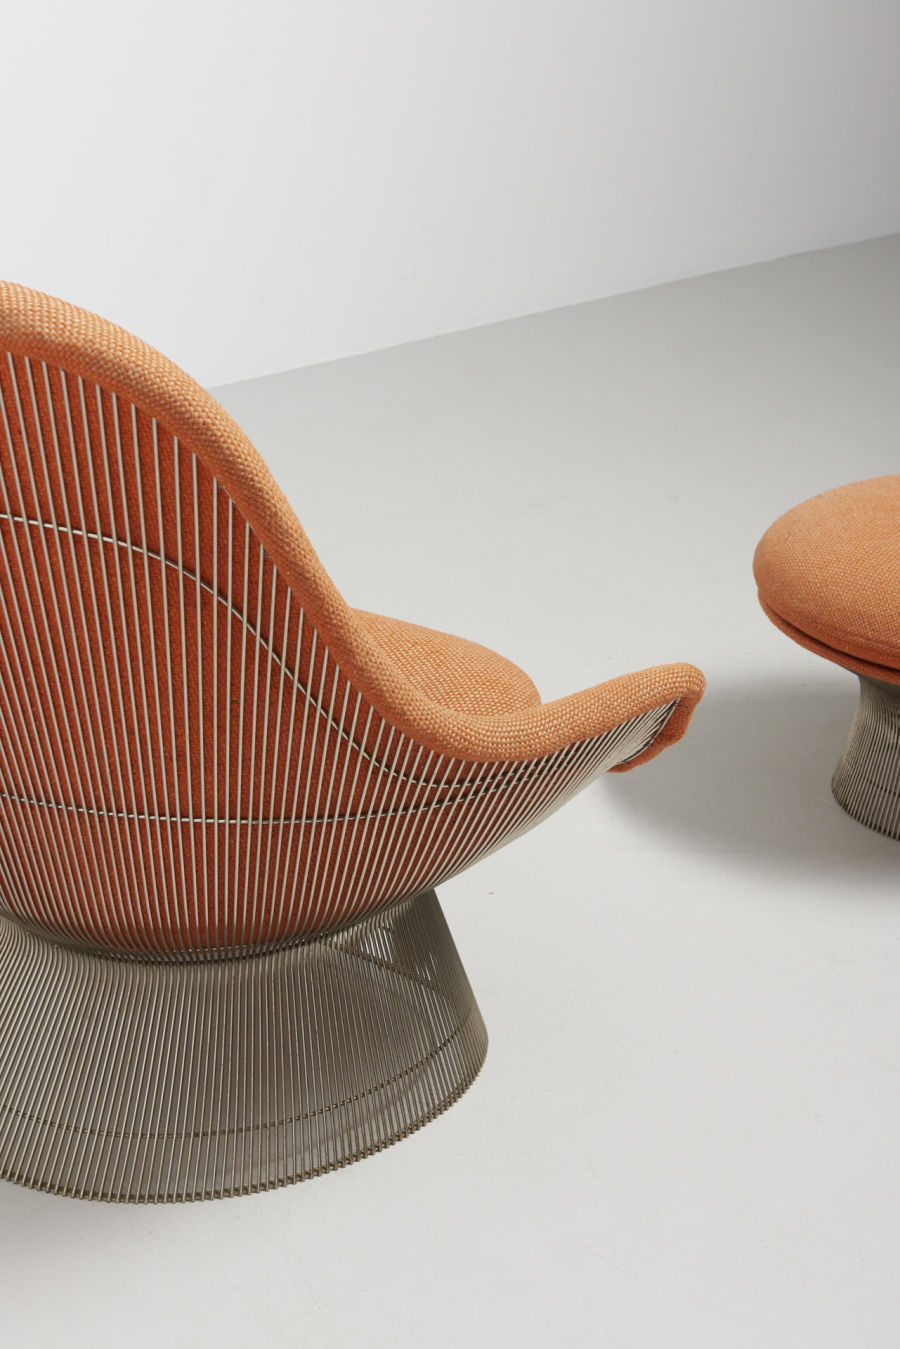 modestfurniture-vintage-2201-warren-platner-lounge-chair-with-ottoman-knoll-international09